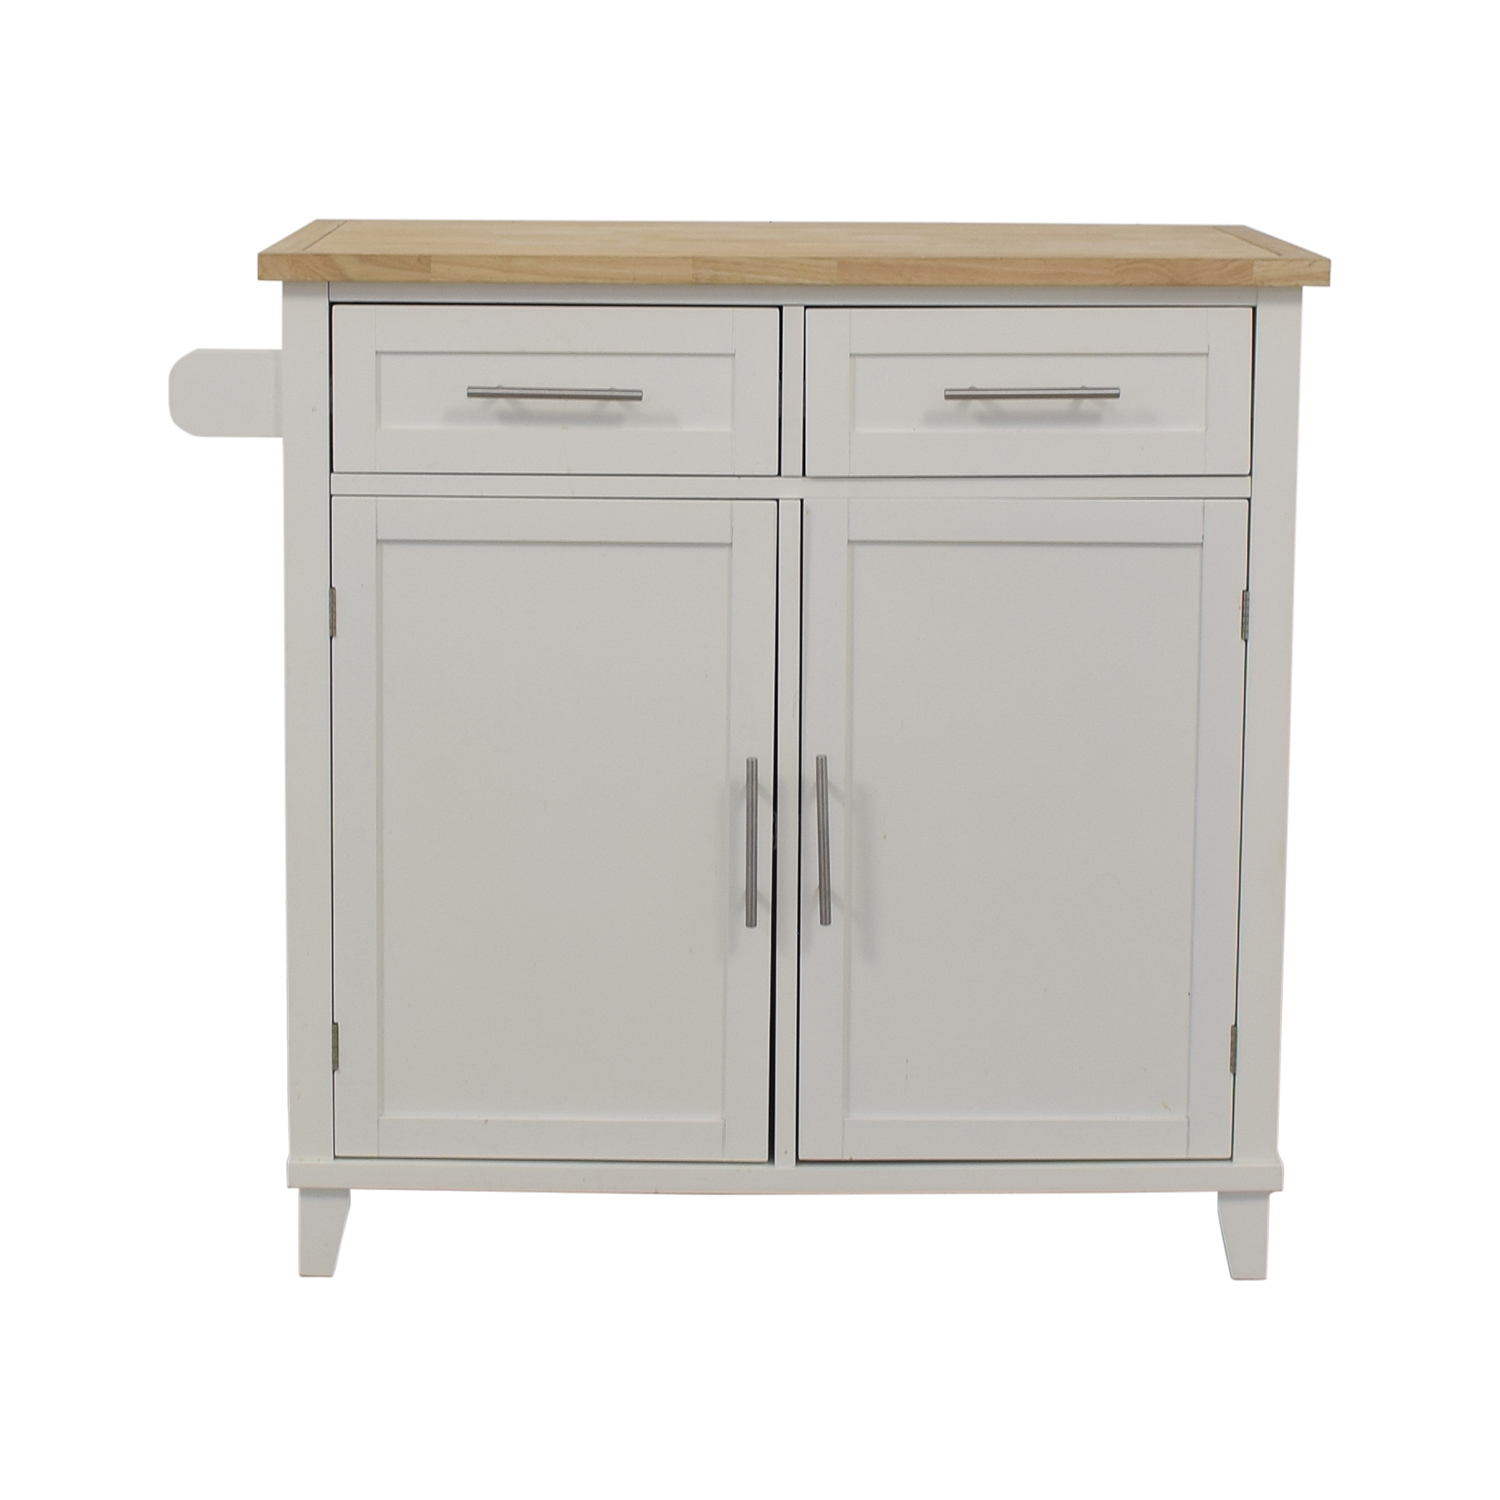 Kitchen Island Storage Cabinet white and brown